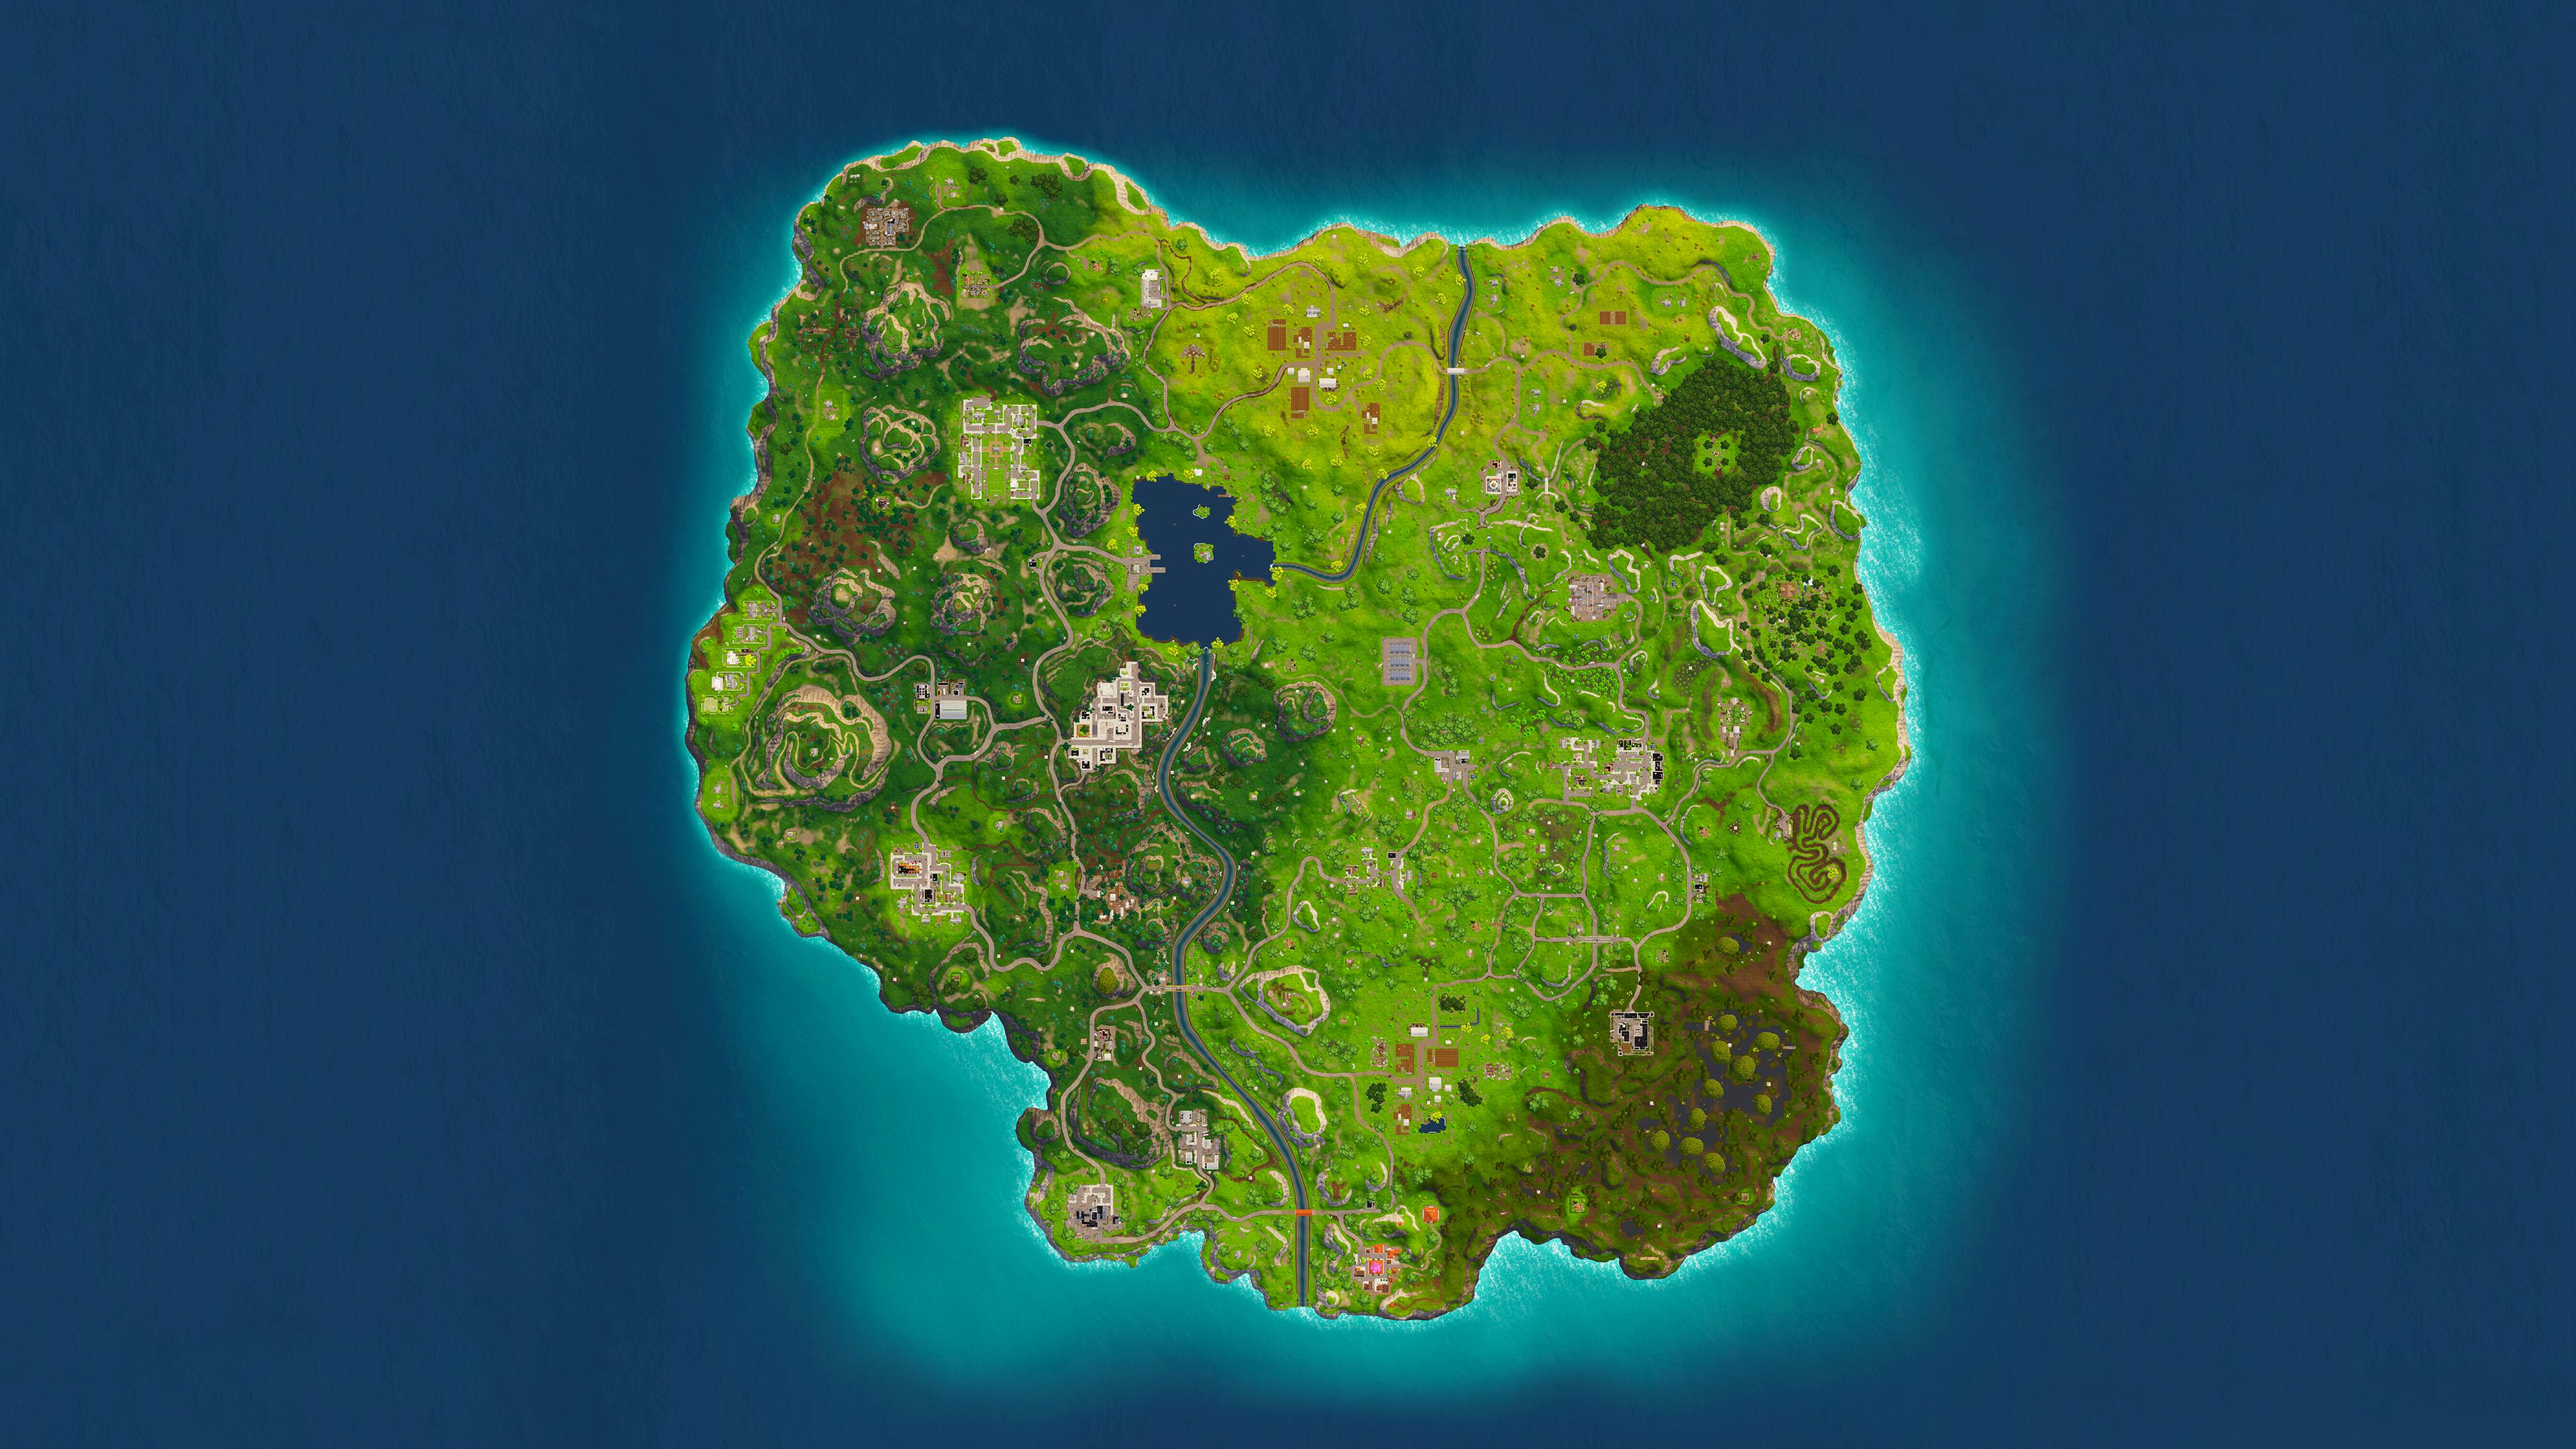 Fortnite Map Wallpaper 4K Ultra HD